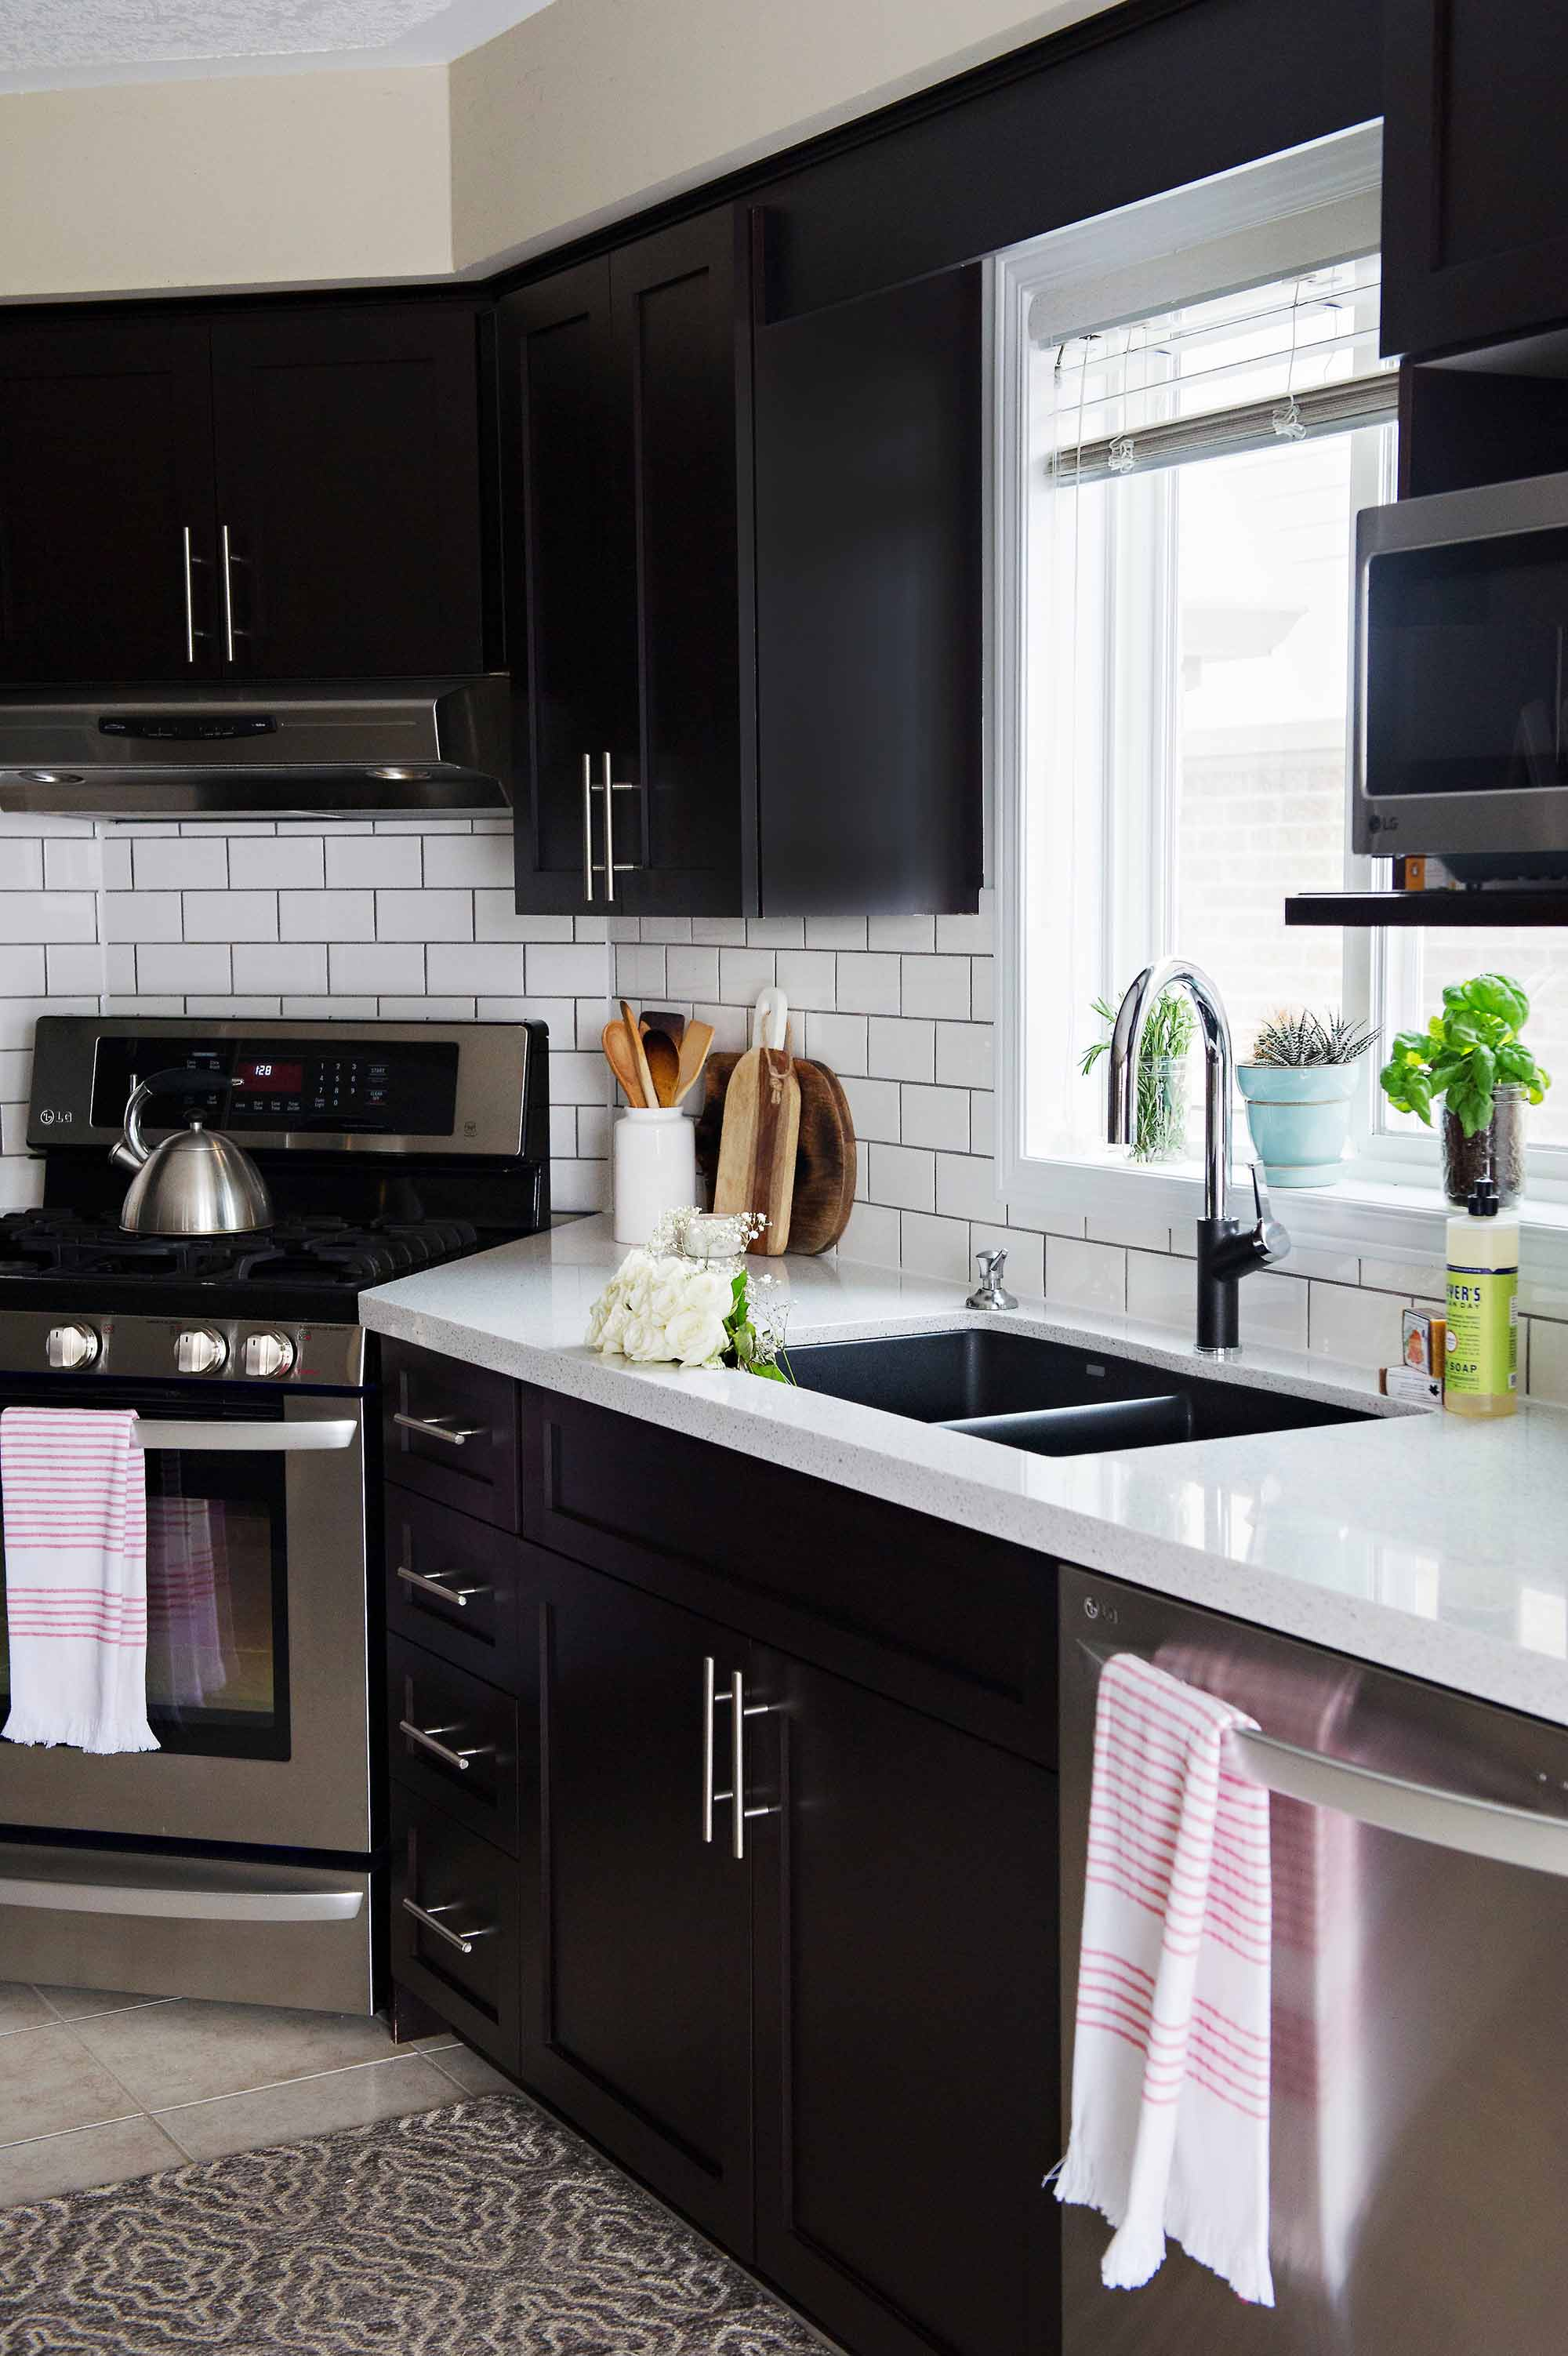 Home Depot and Renuit Kitchen Refacing Project Reveal